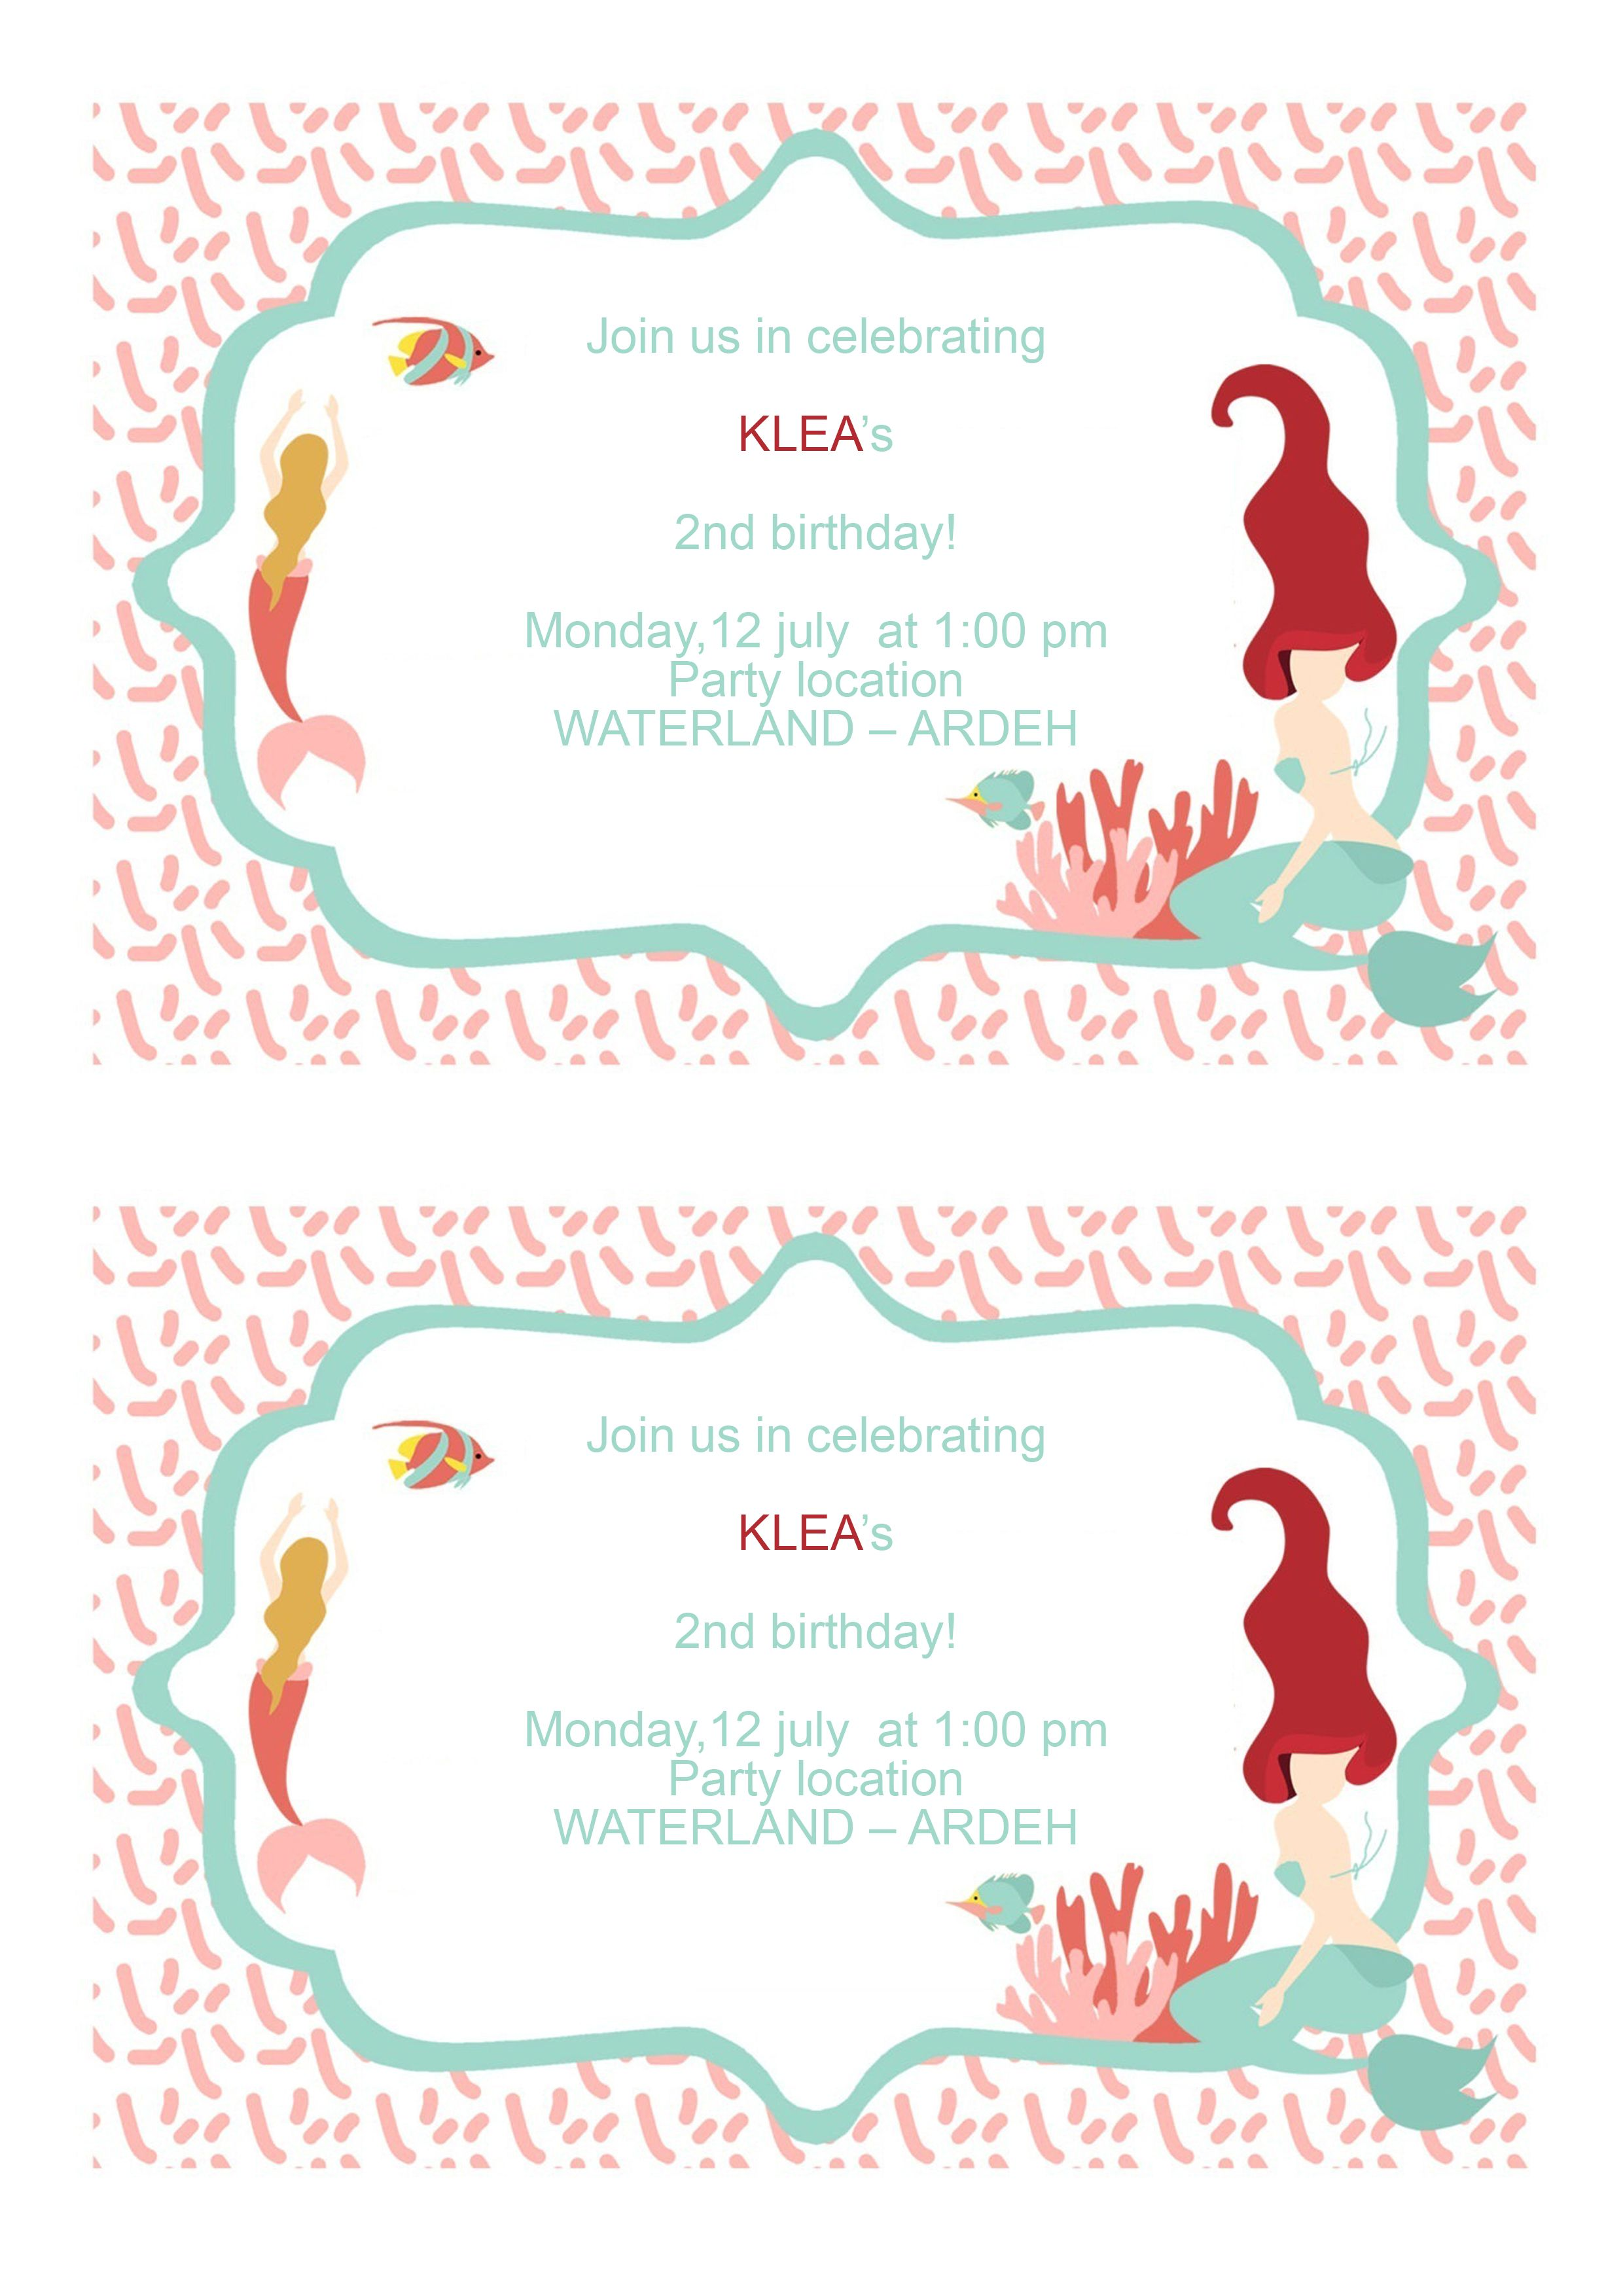 underthesea sea shell mermaids birthday party printable